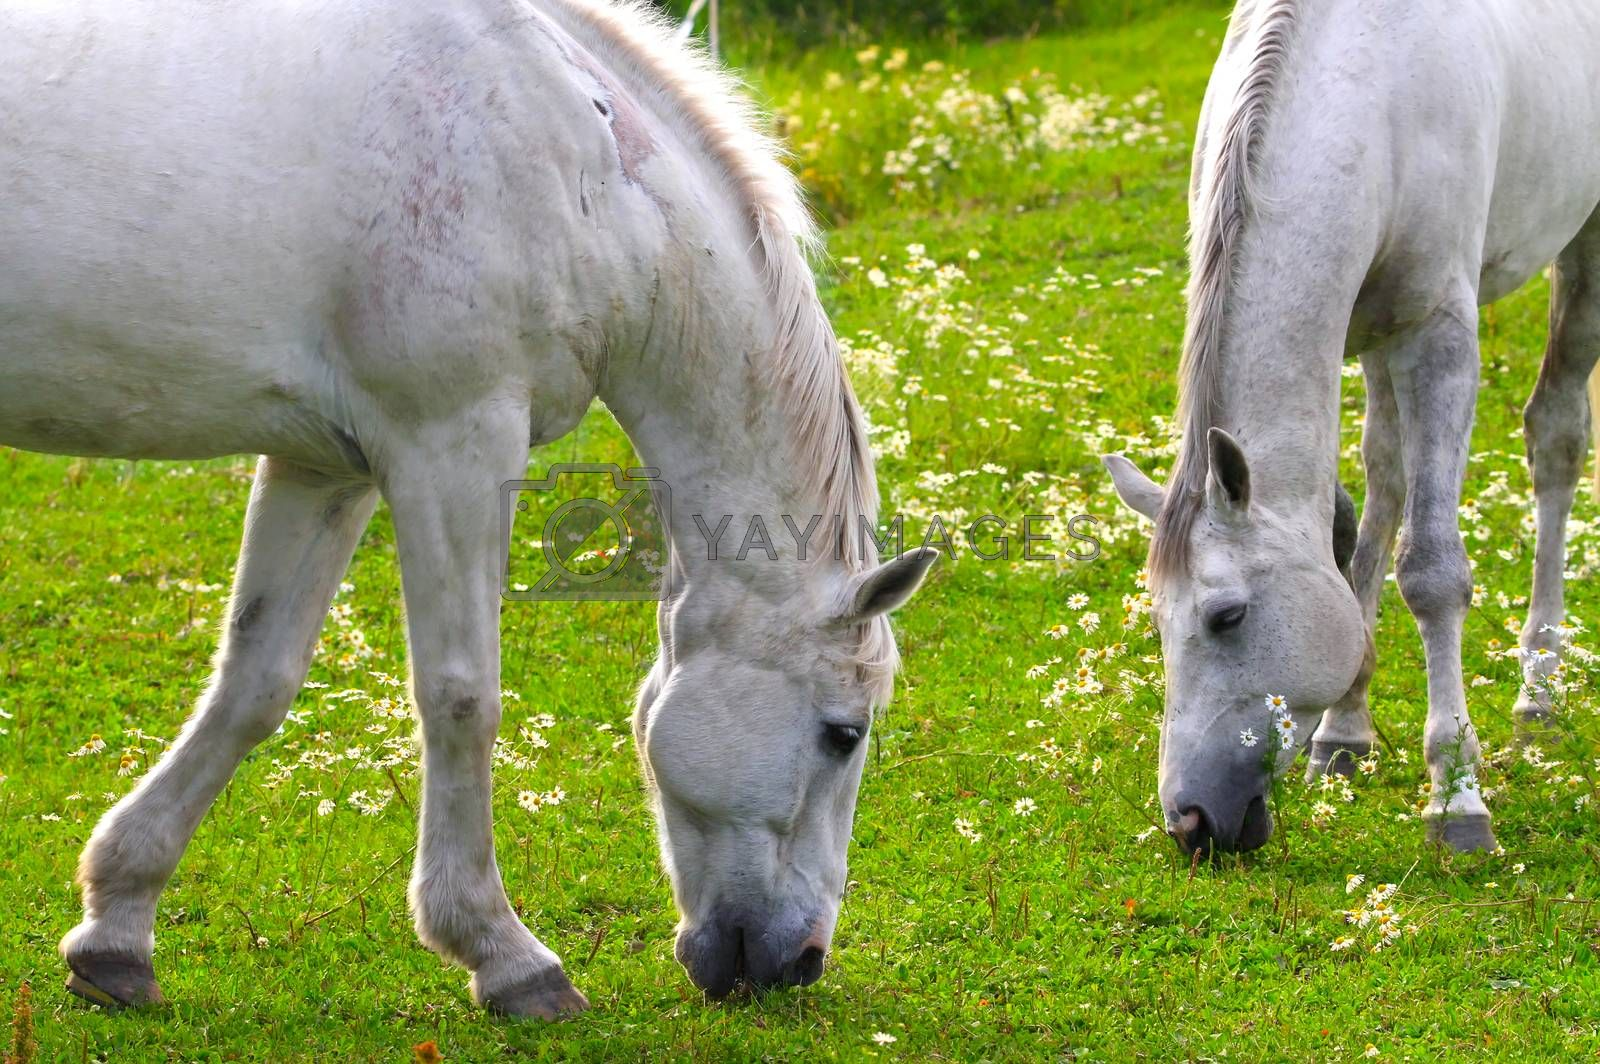 Two white horses eating fresh grass together on a beautiful green field filled with white flowers. Closeup of two horses with heads and front legs visible.